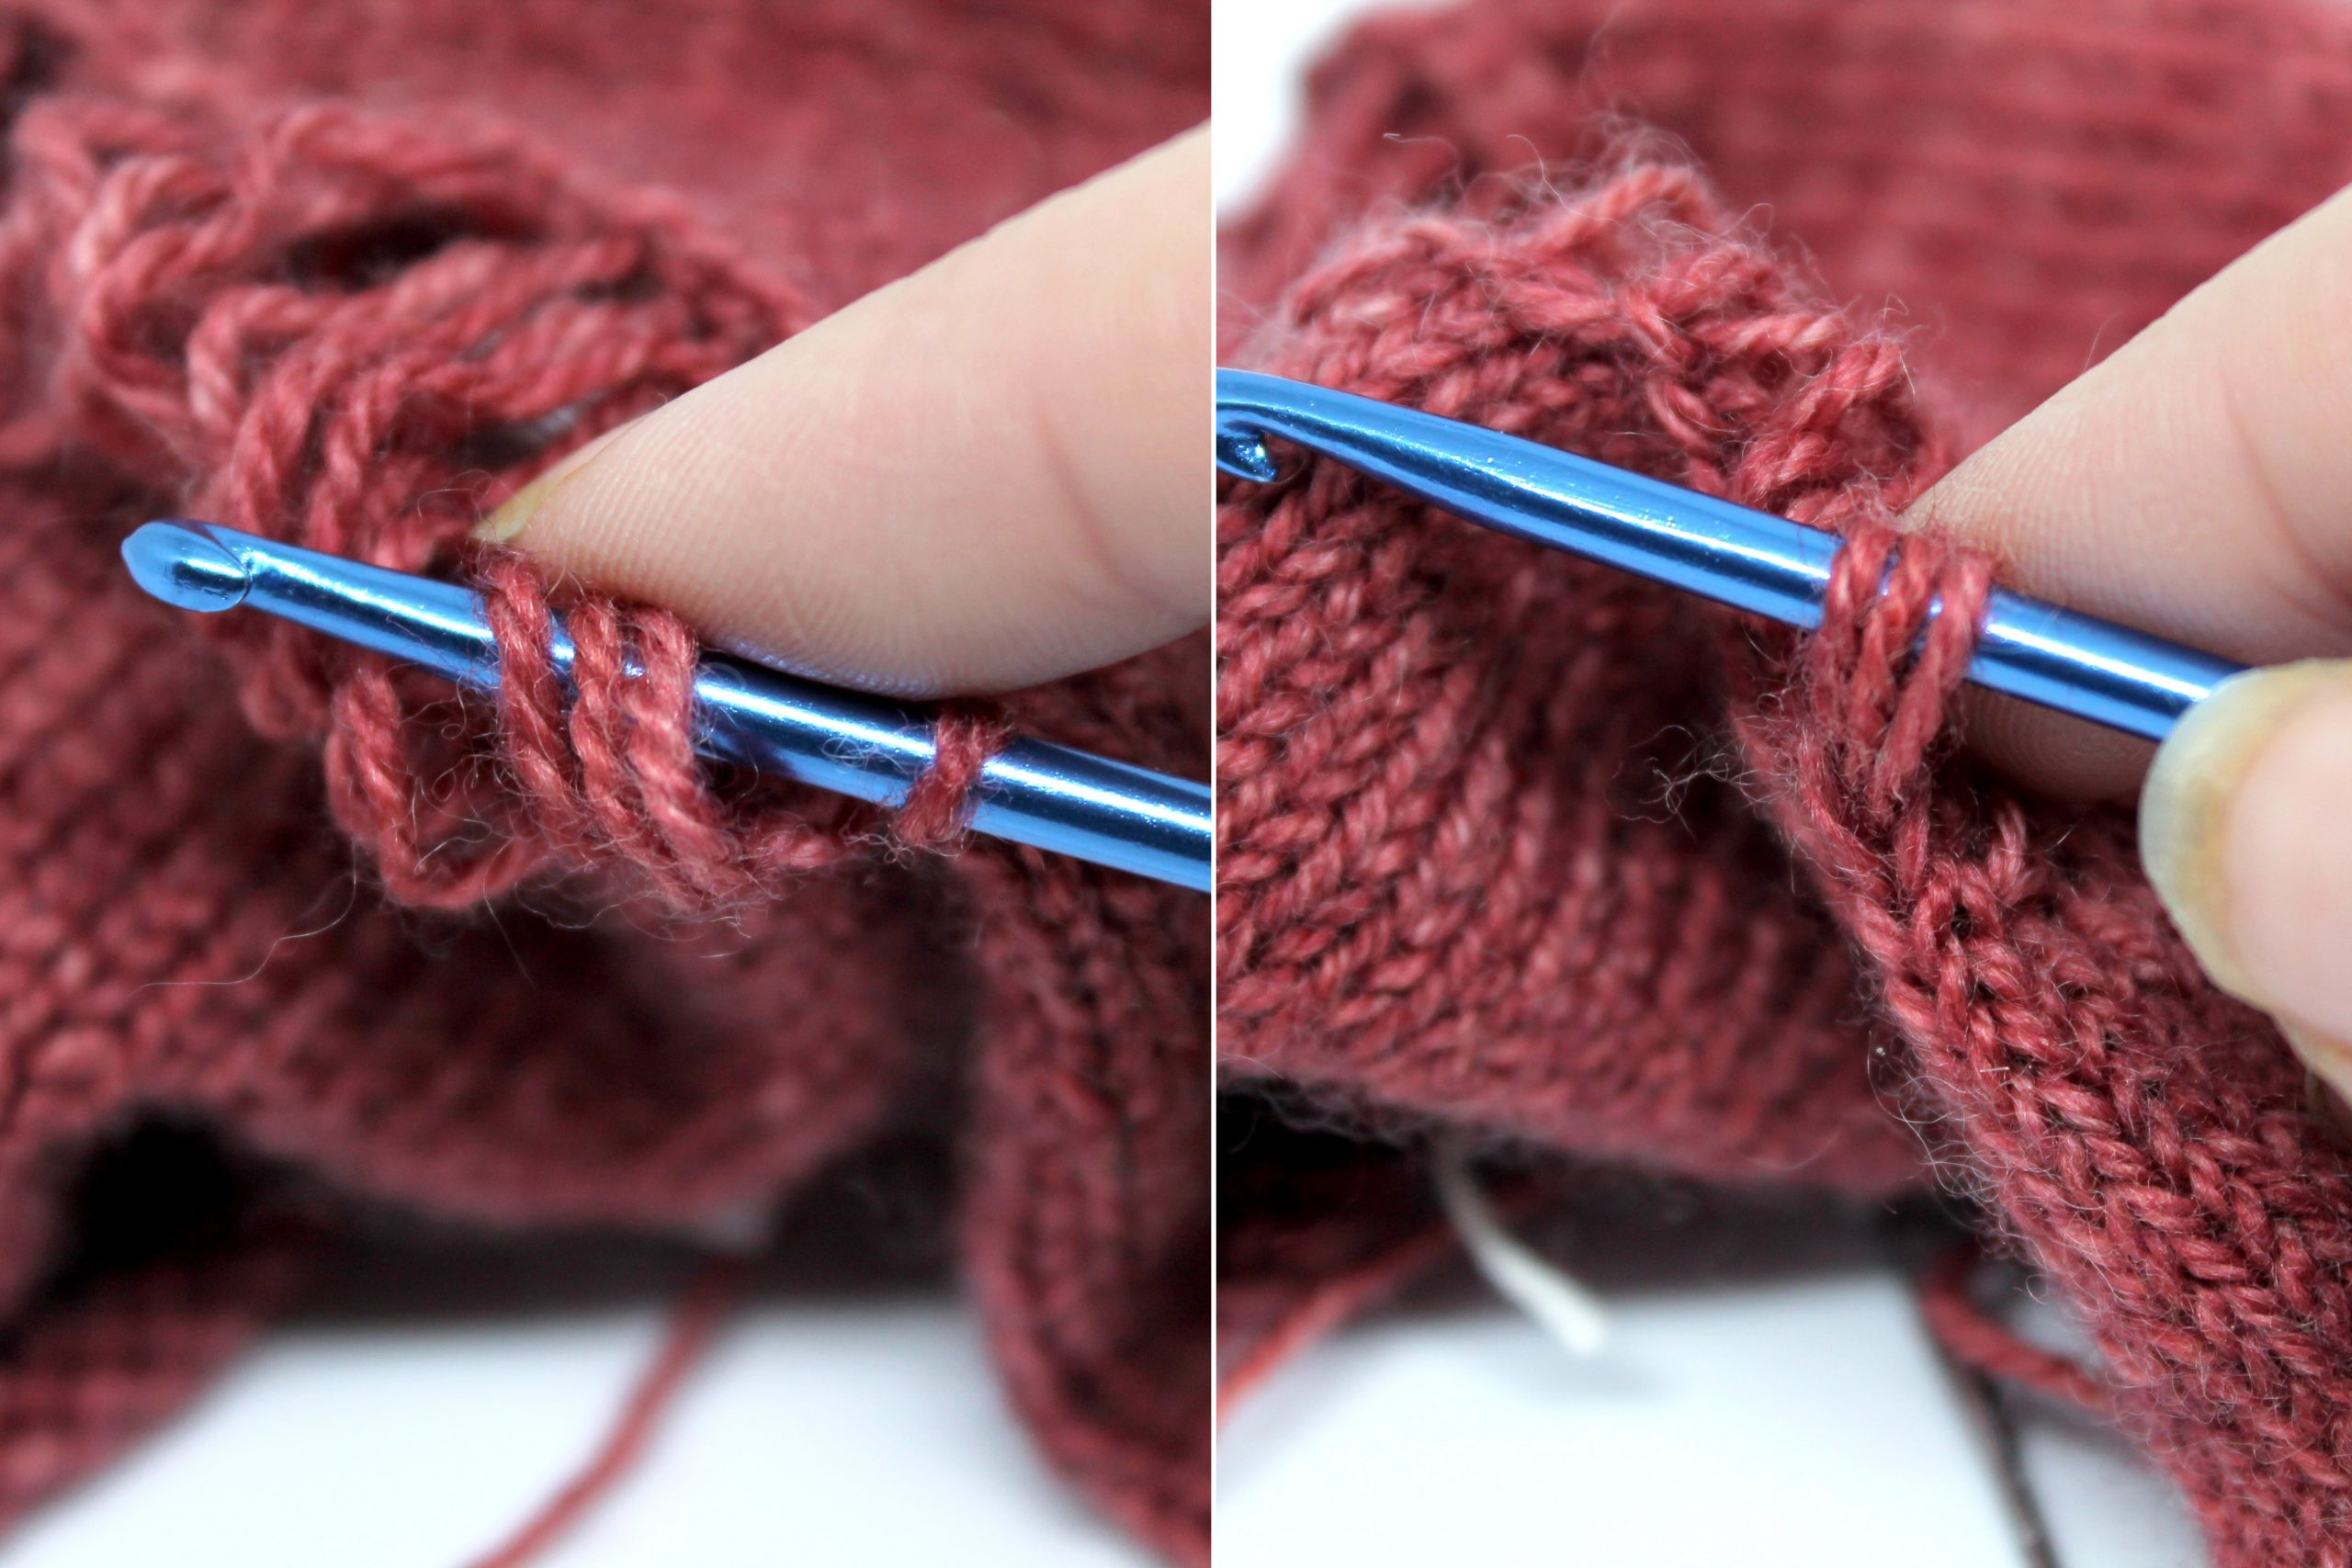 Two images. Left image: Three of the laddered strands of yarn have been placed on the crochet hook beside the stitch from step 2. Right Image: The three laddered strands have been pulled through the single stitch and remain on the crochet hook.